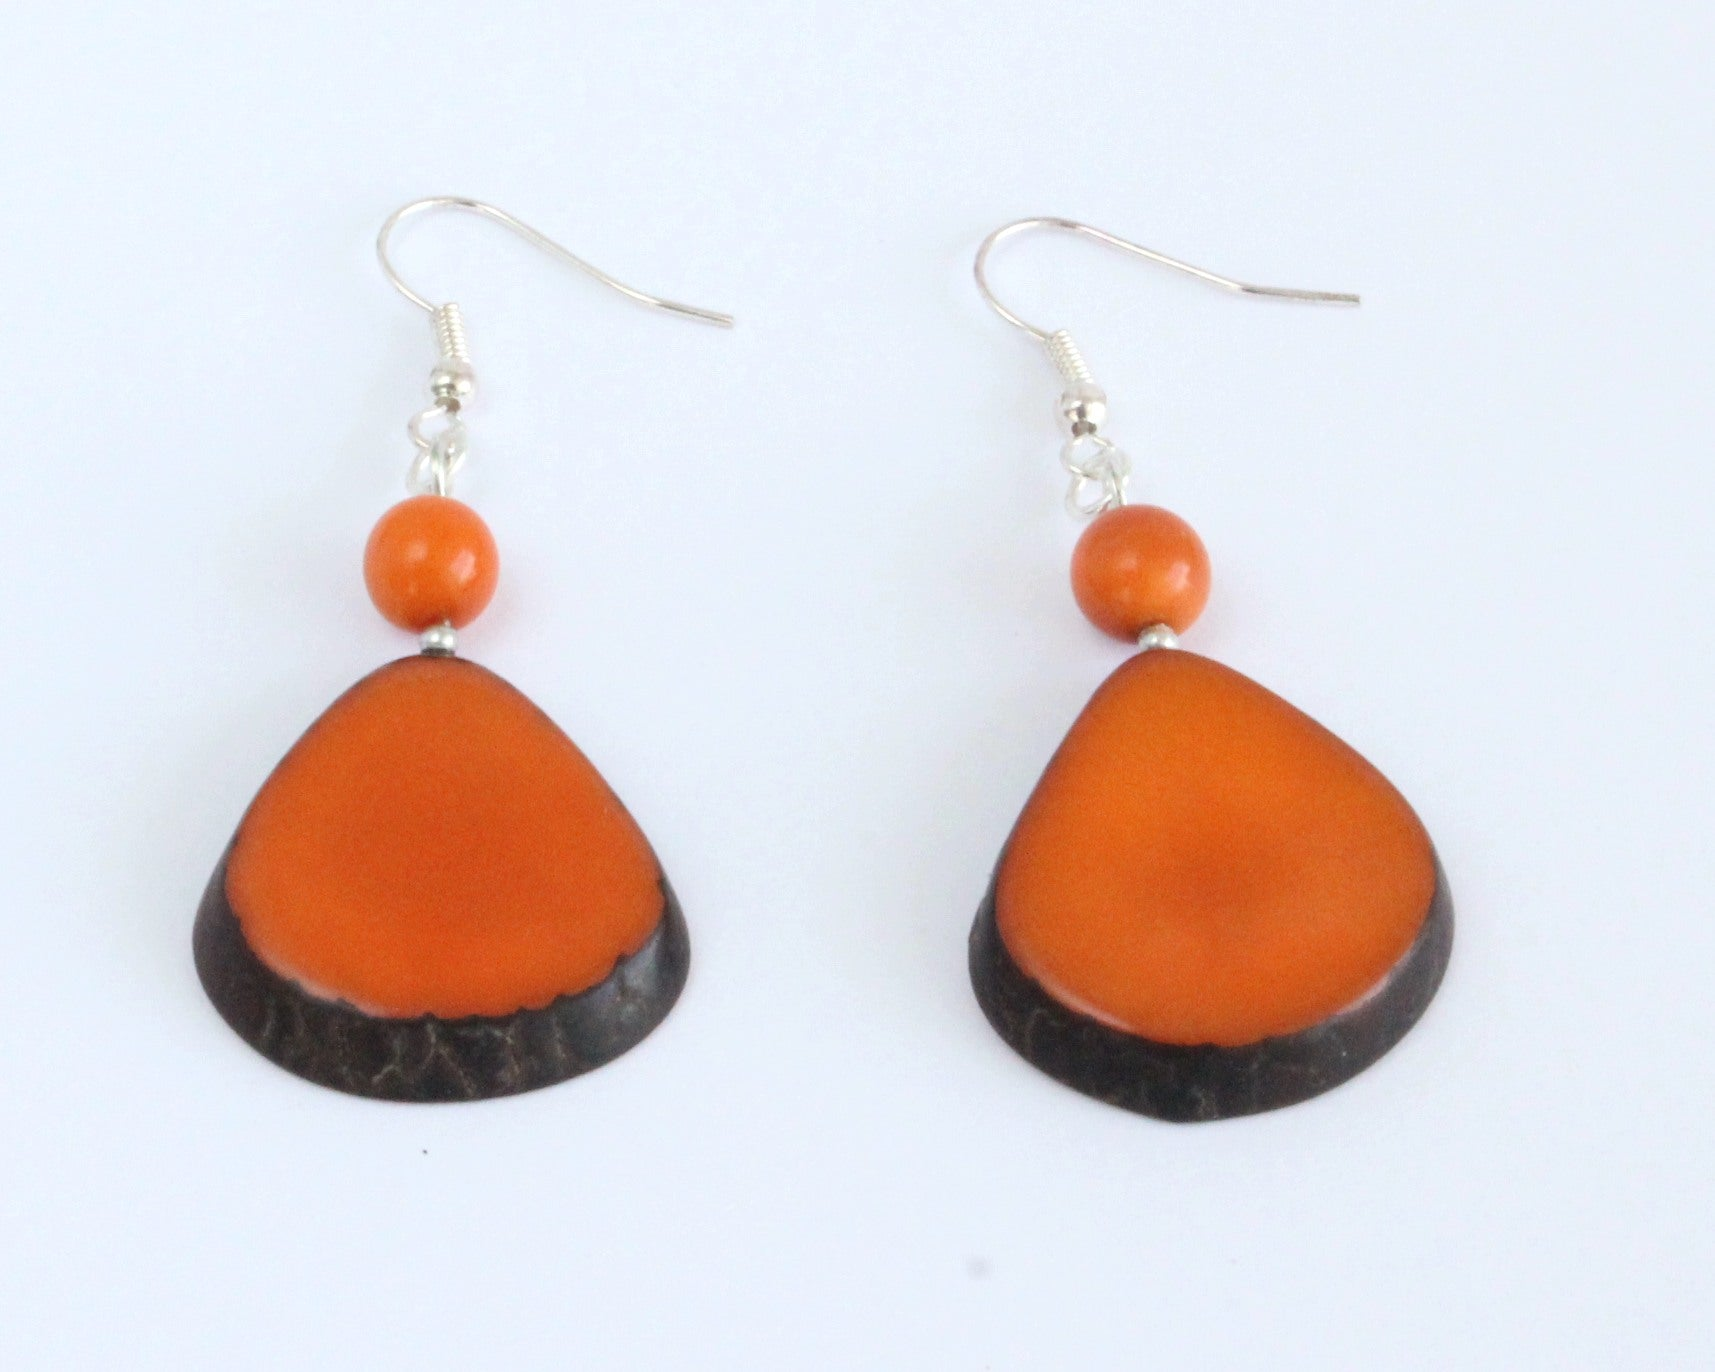 Handmade earring, fish hook, tagua, colourful, orange, front